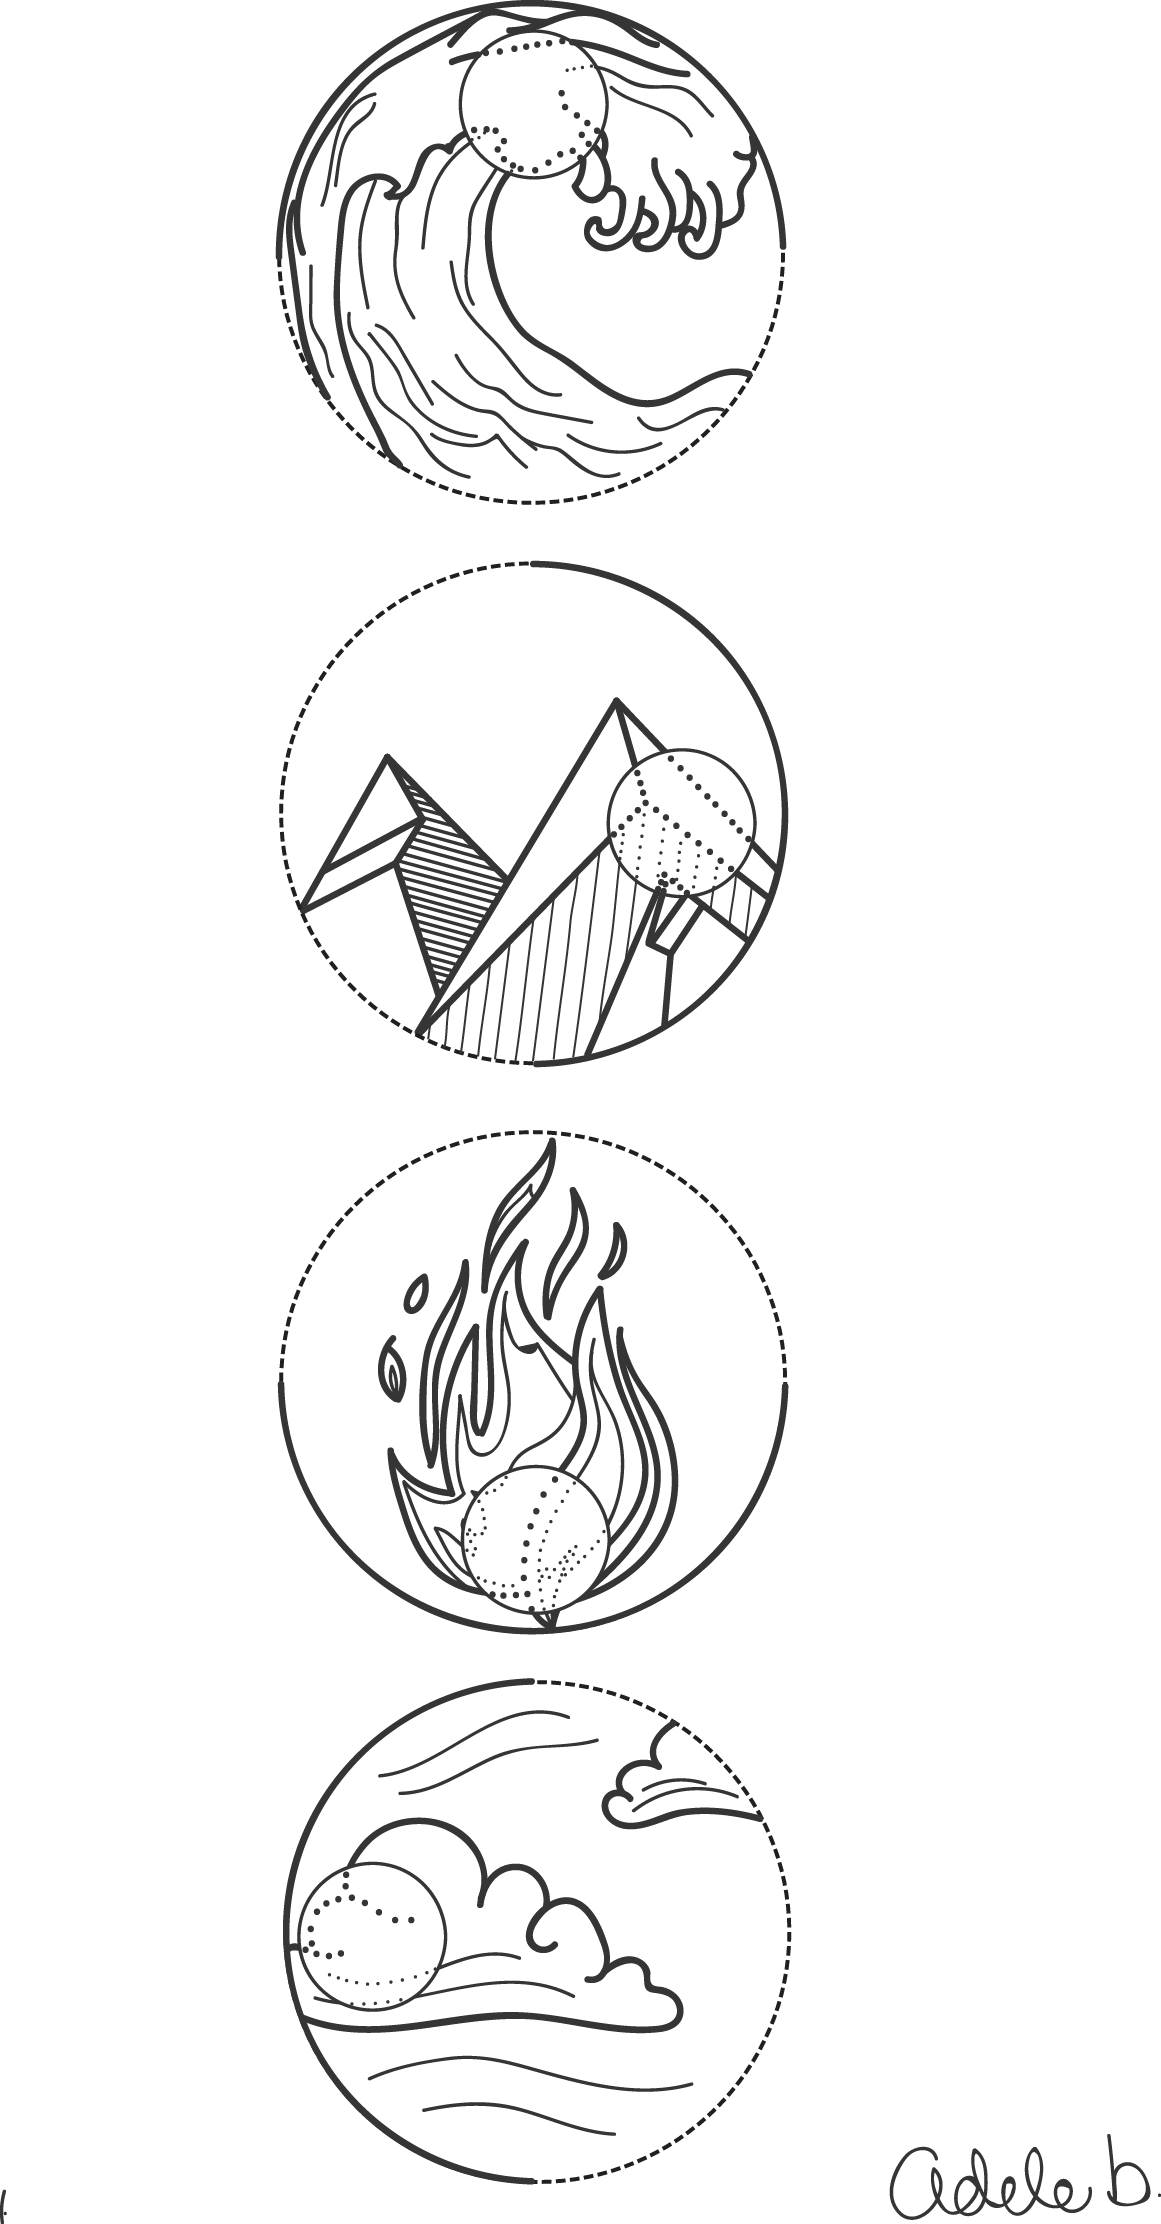 f37f8b3f82086 4 Element symbols Water, earth, fire and air. Tattoo idea no 1. drawn on  Illustrator